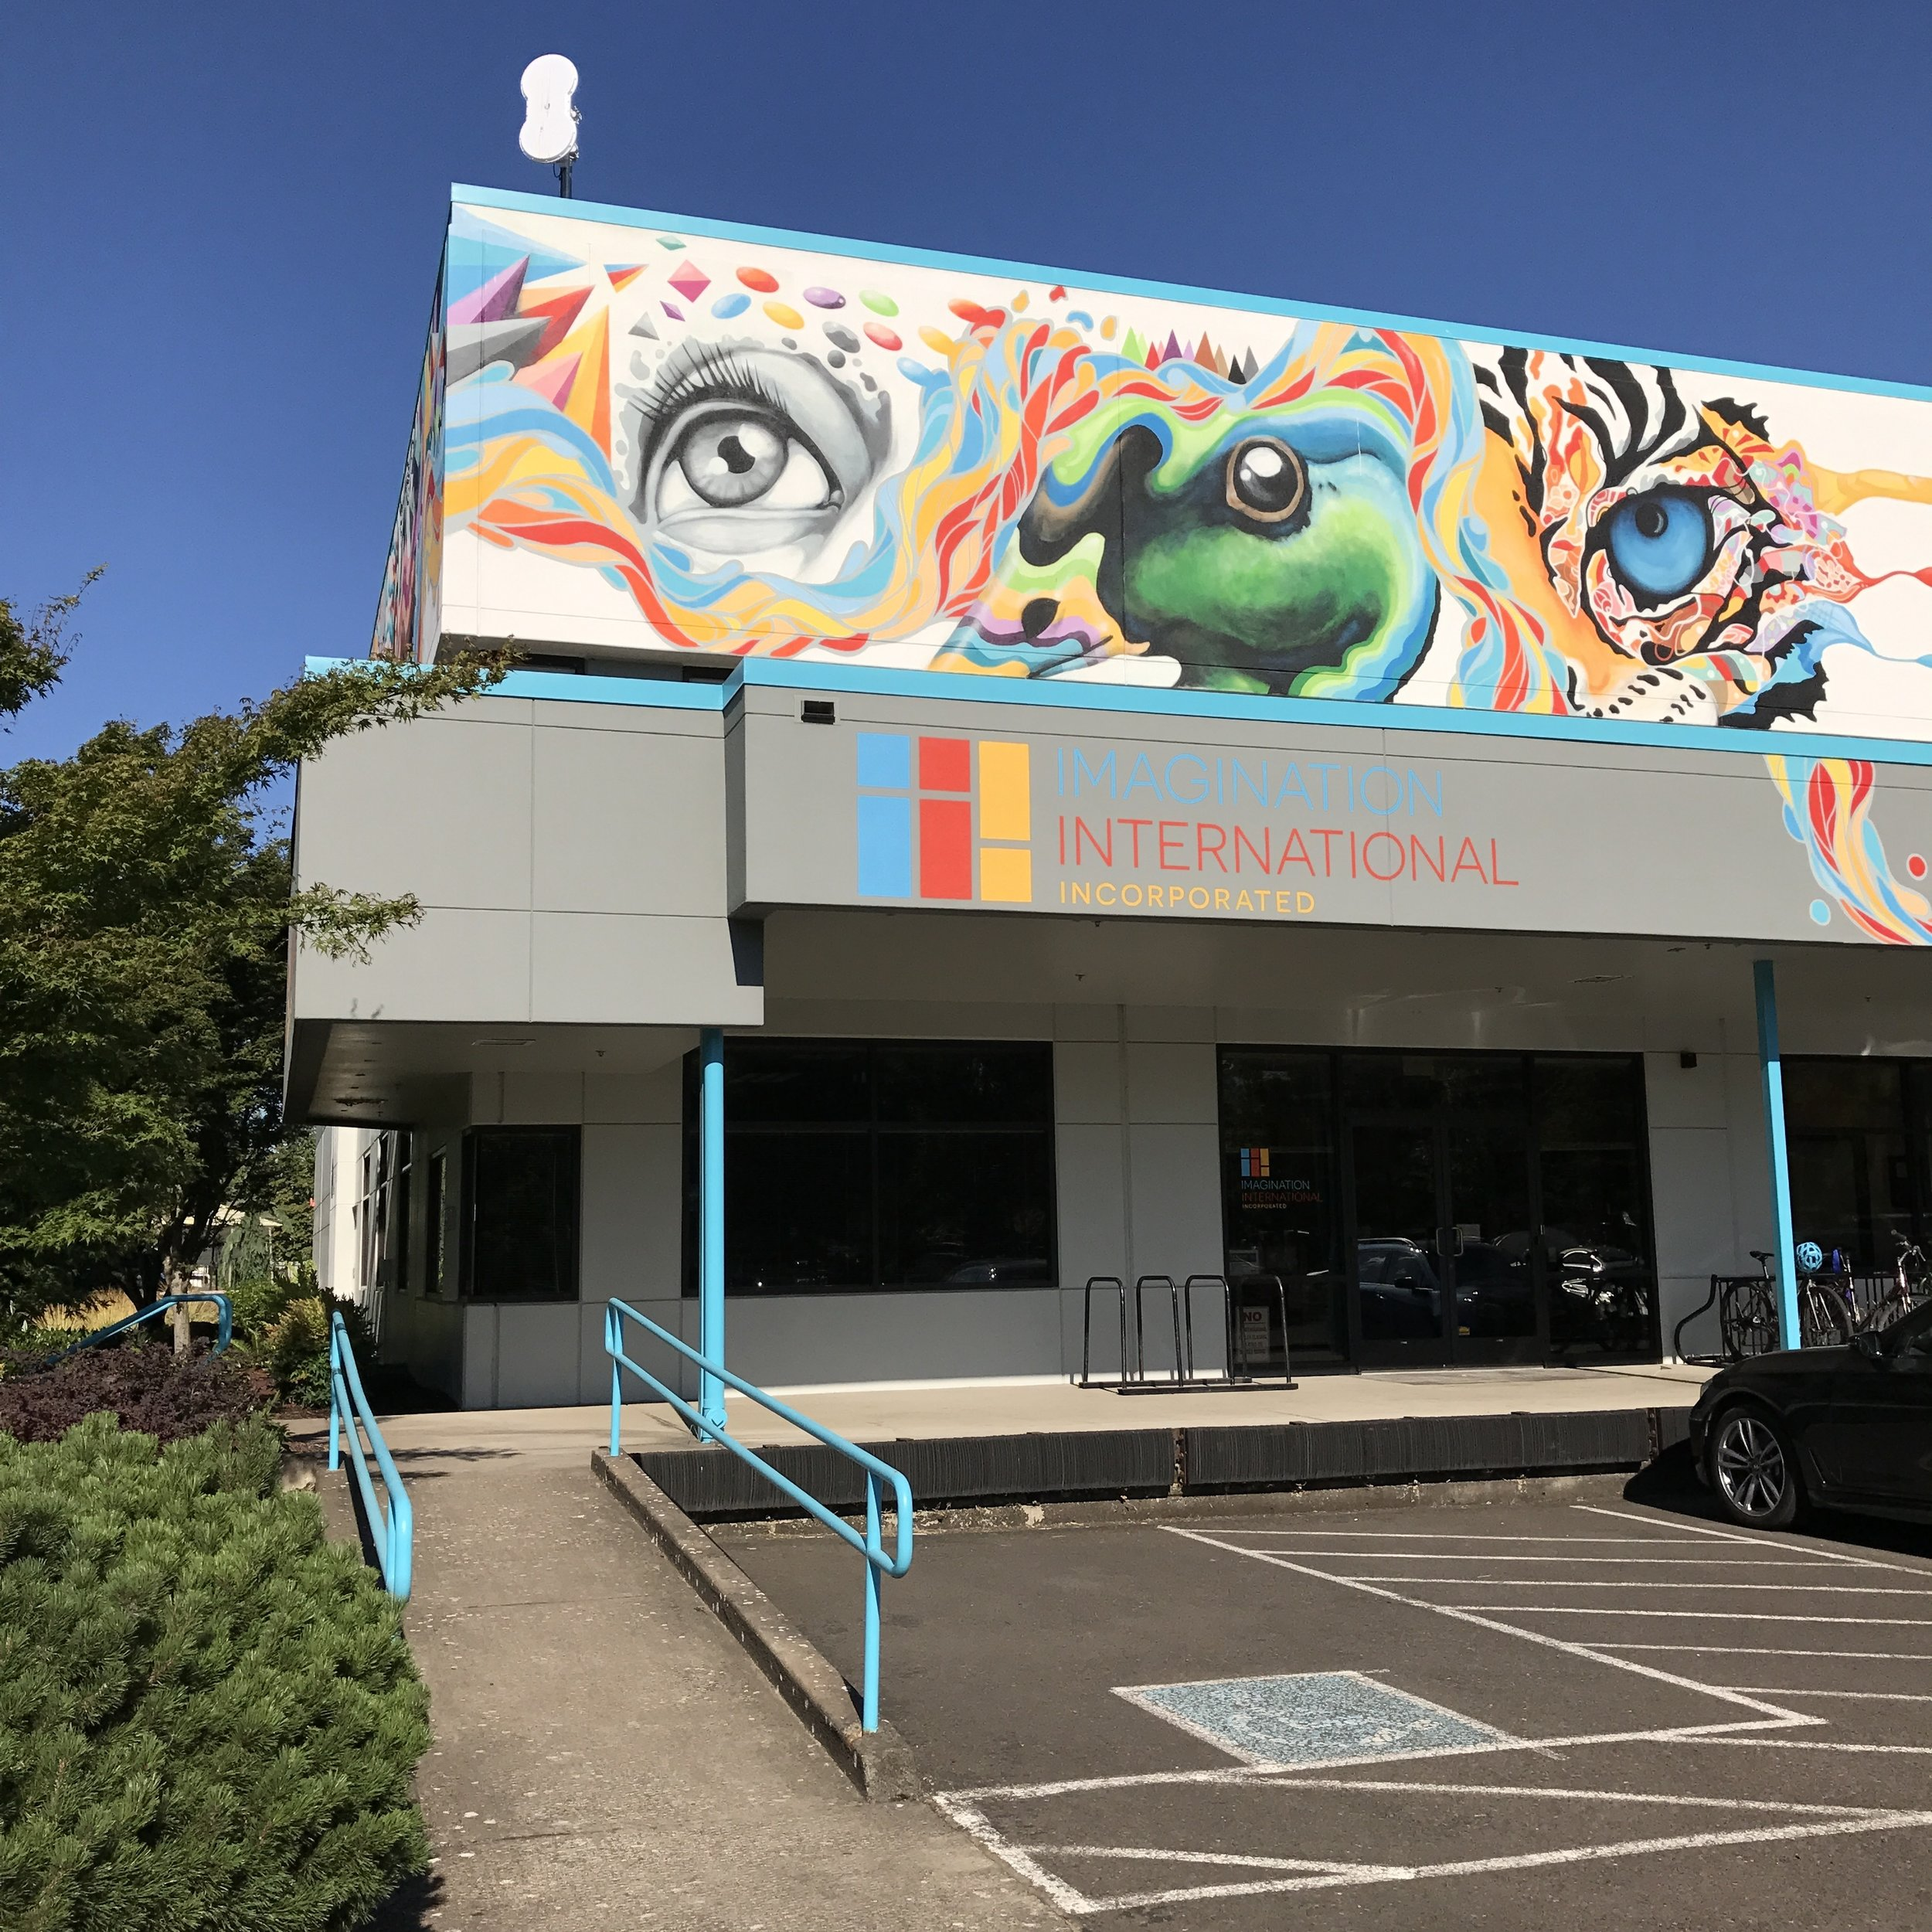 The outside of the @imaginationinternational/@copicmarker building.